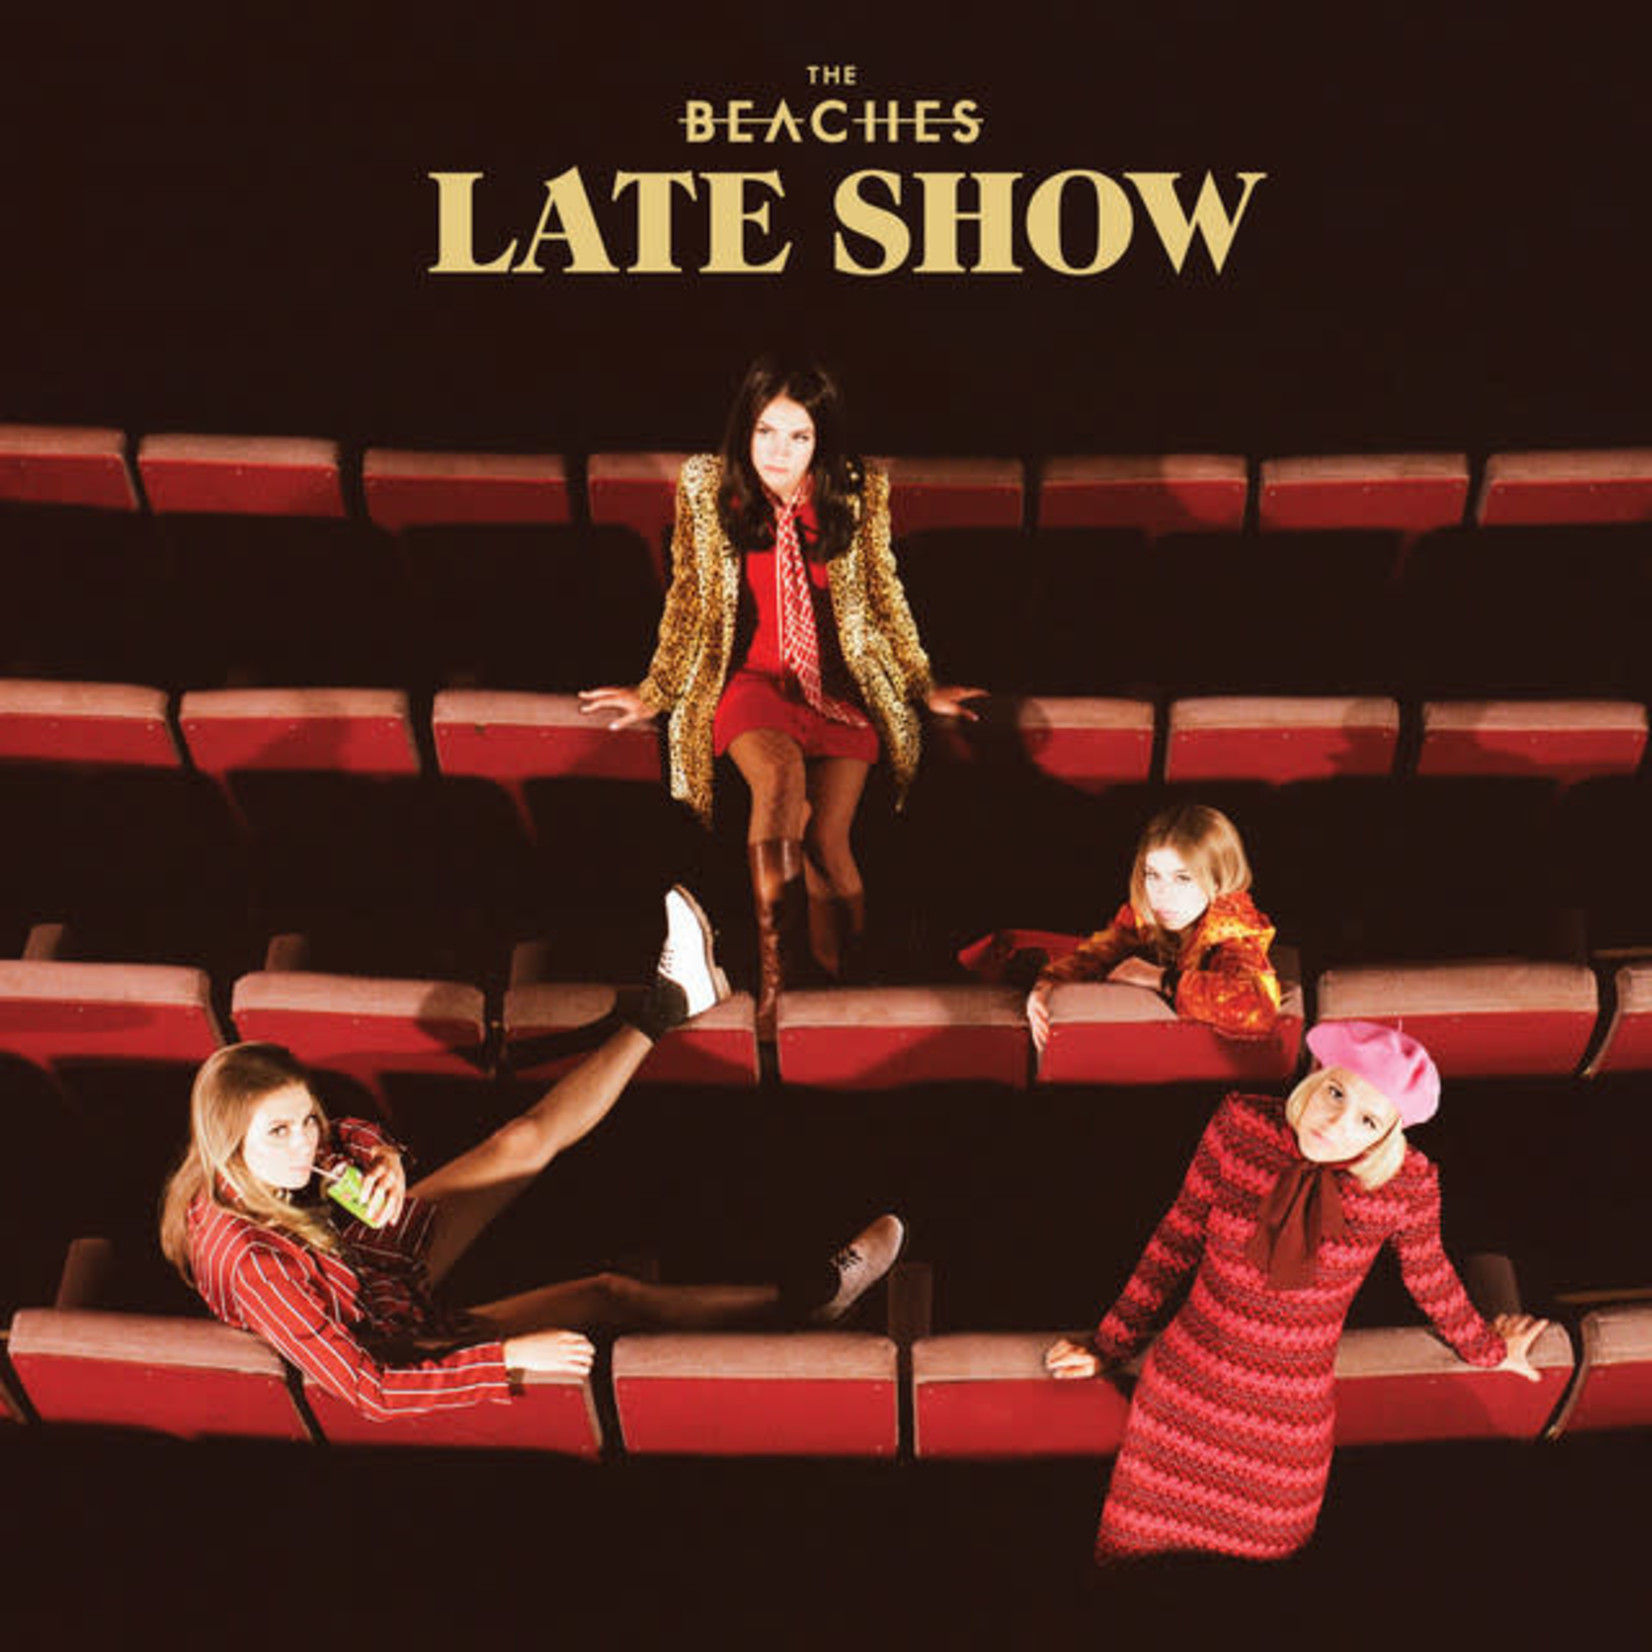 Vinyl The Beaches - Late Show